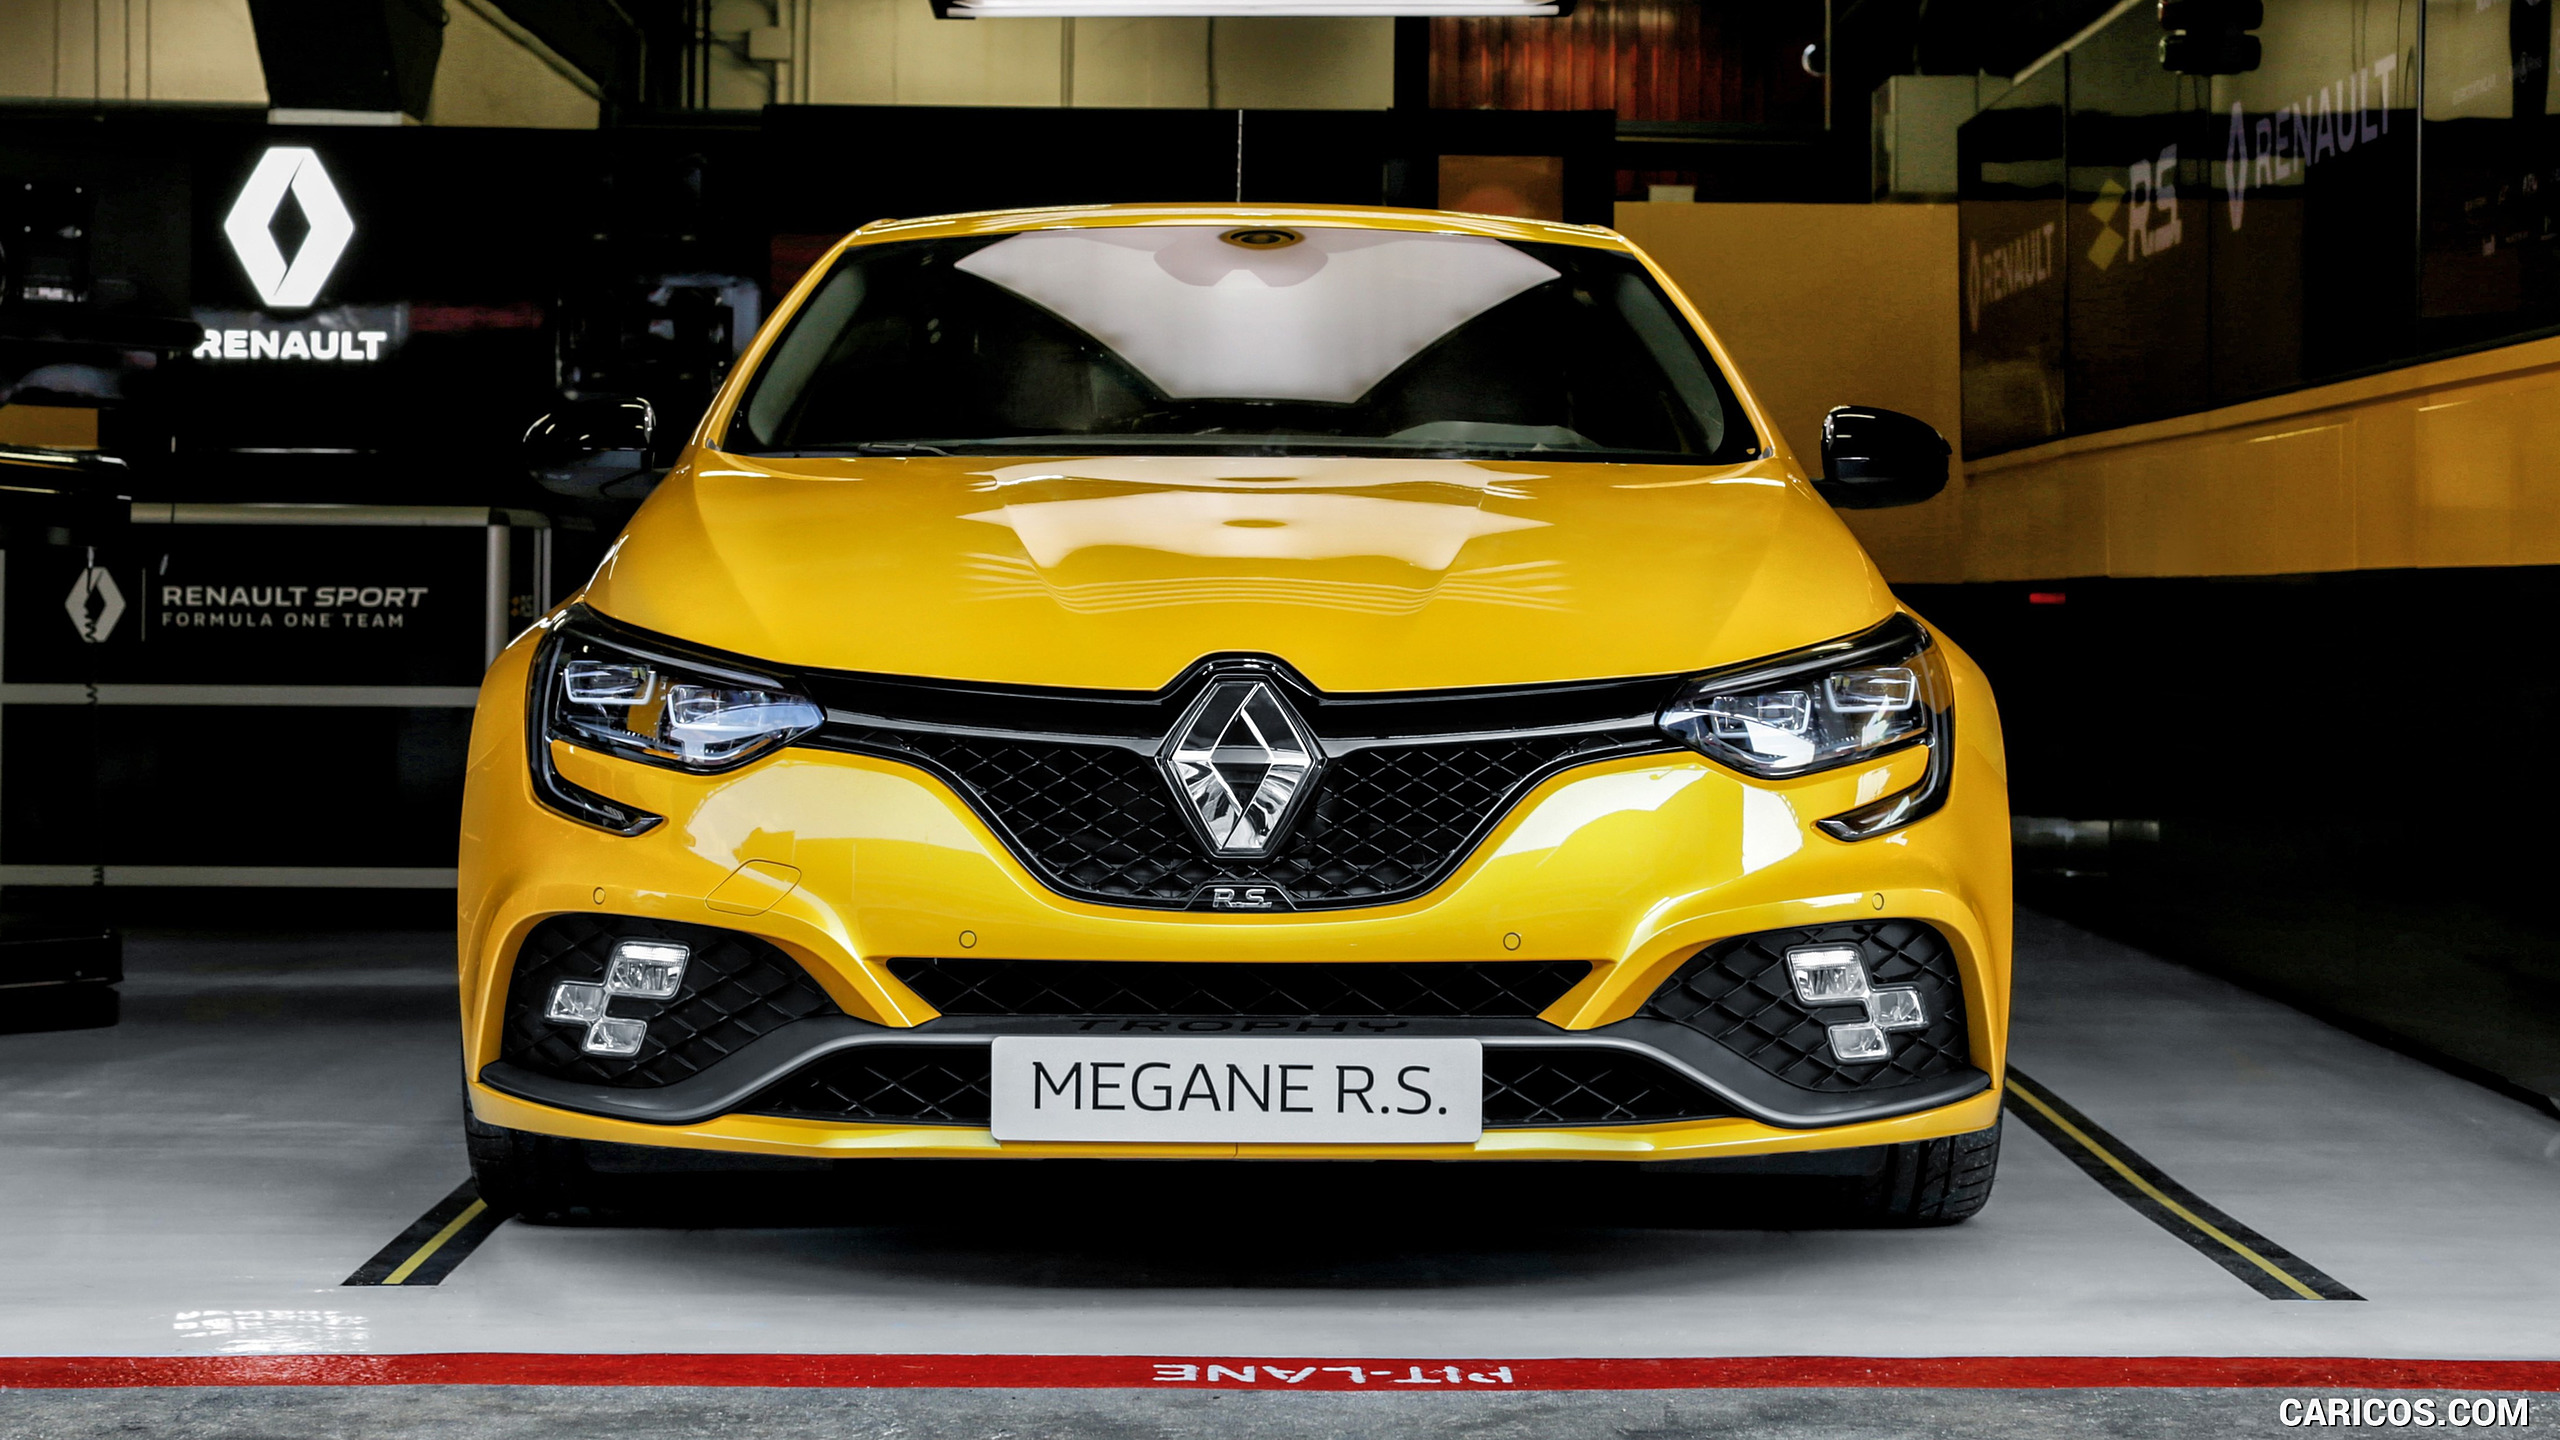 2560x1440 - Renault RS Wallpapers 26